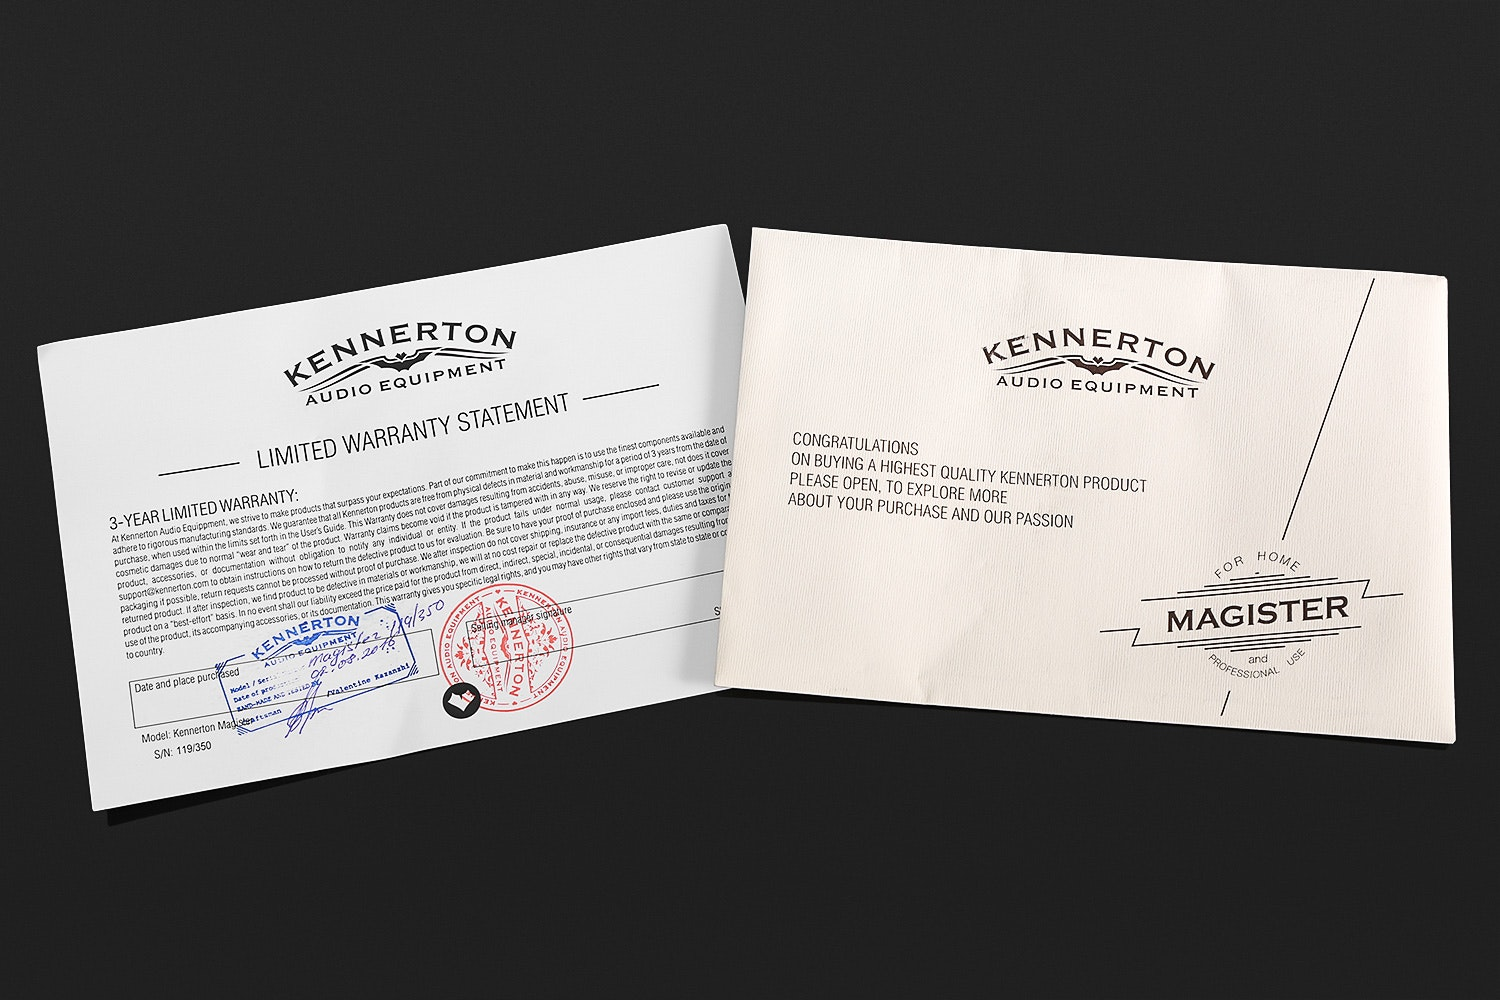 Kennerton Magister Light and Magister Headphones